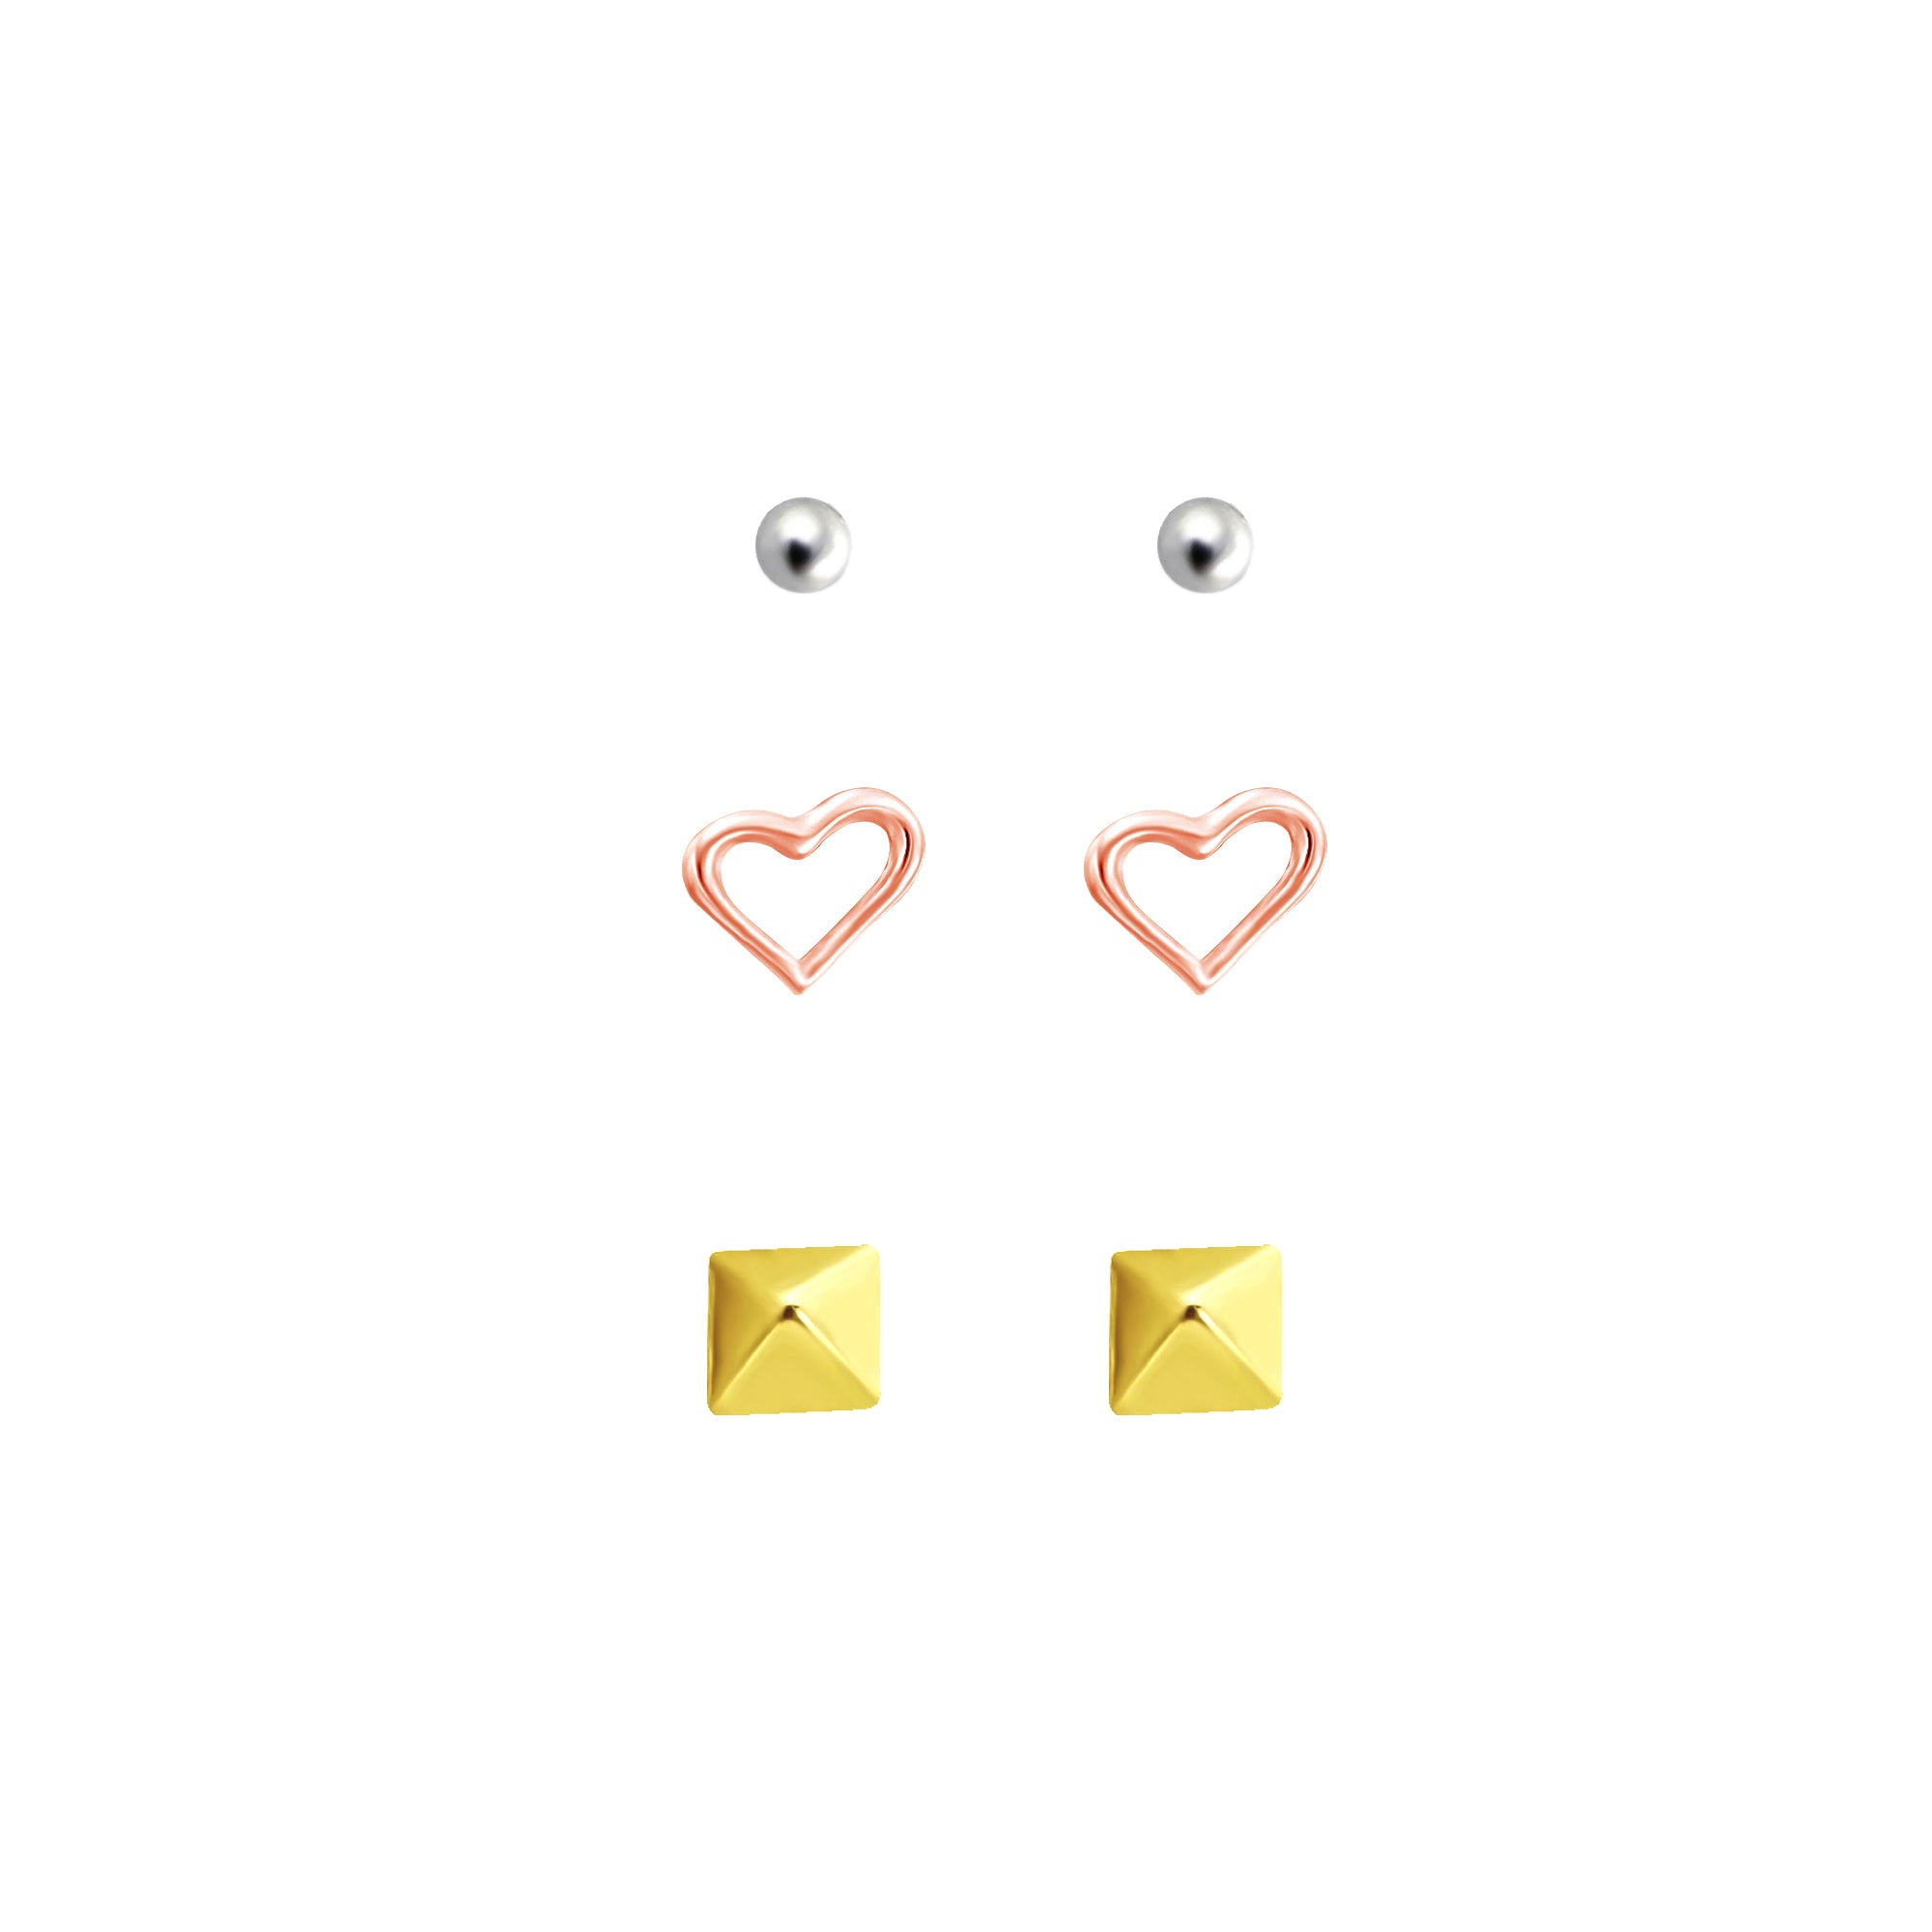 Link-Up Set of Three Rose Gold Plated Stud Earrings in Various Shapes